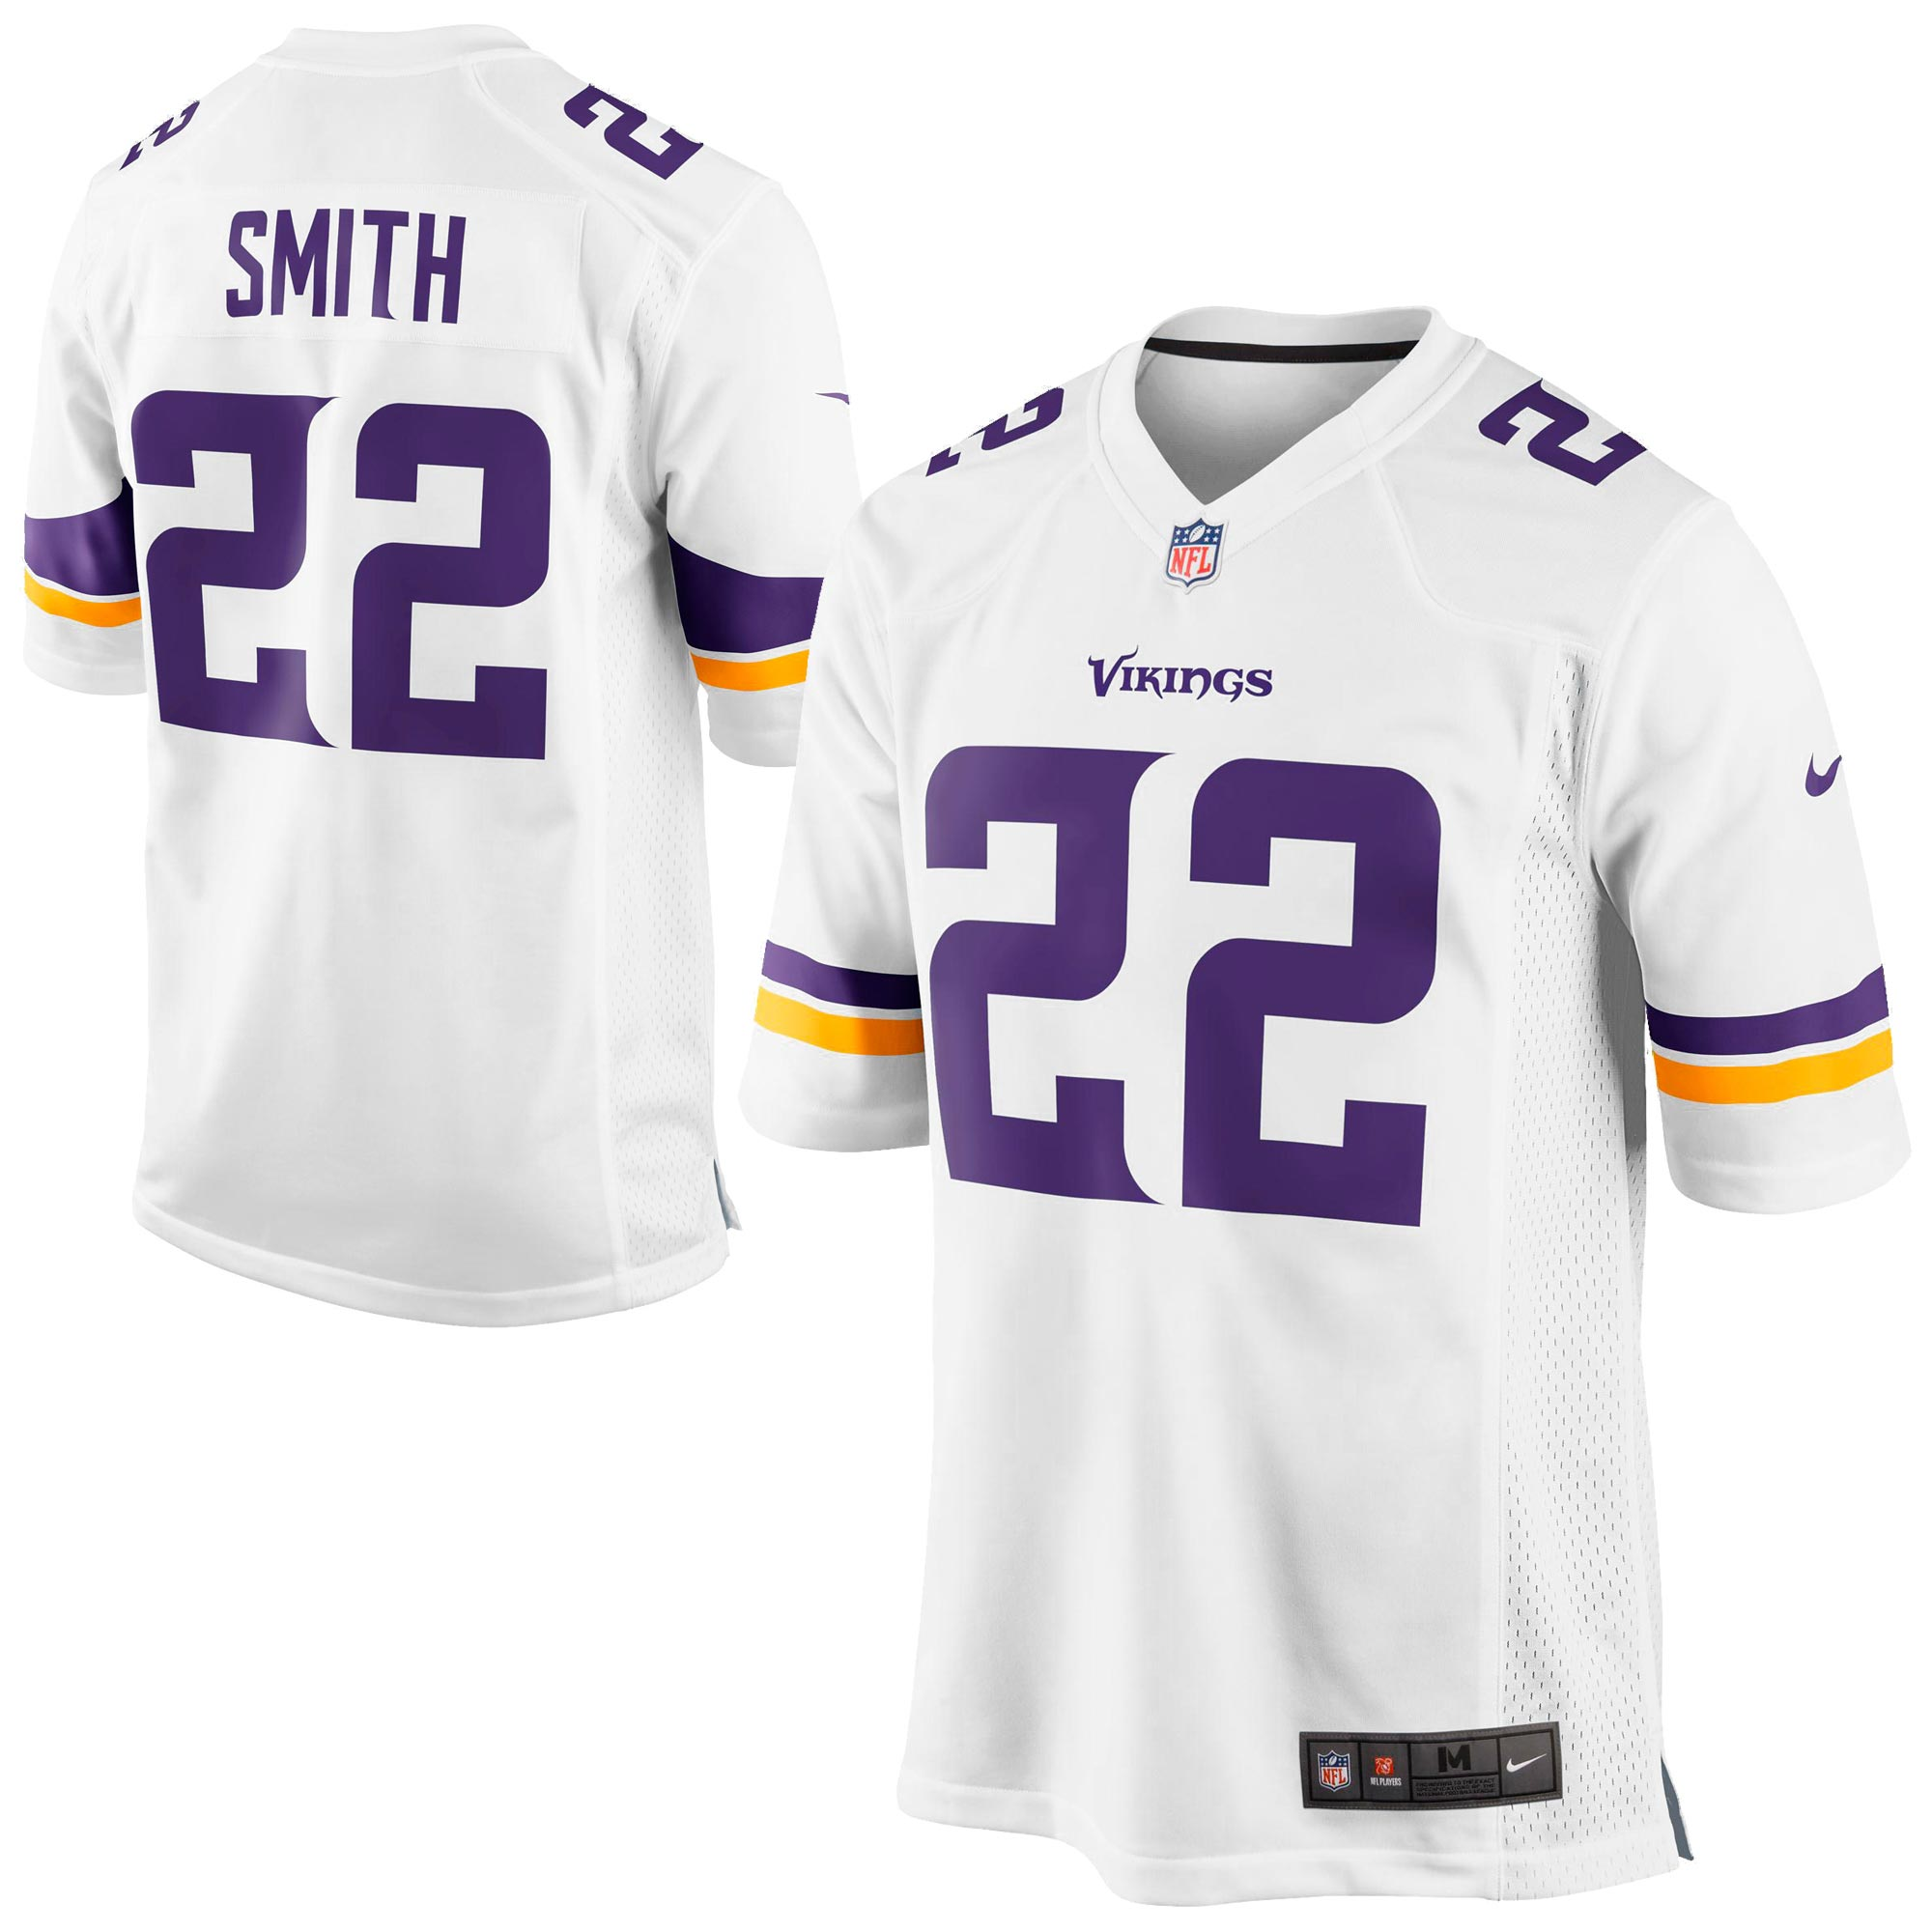 Minnesota Vikings Auswärtstrikot – Harrison Smith – Herren